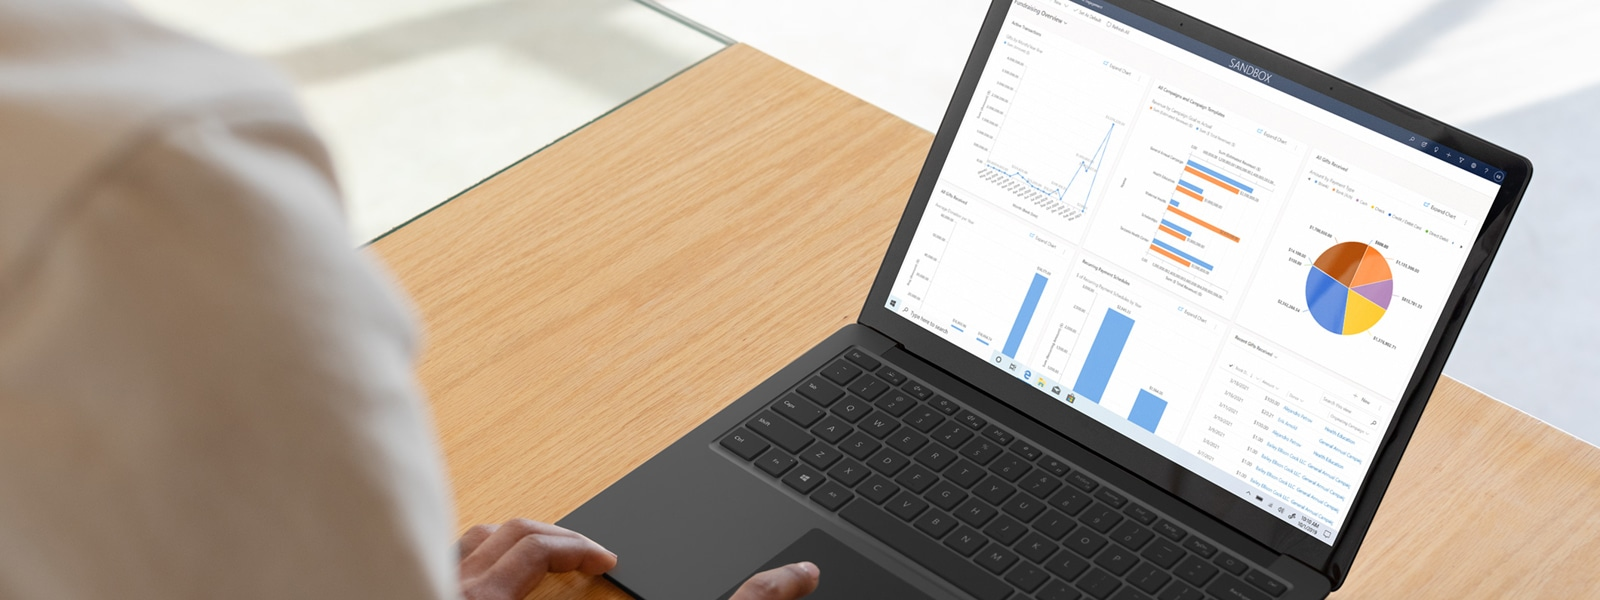 Close up of a Microsoft laptop using the Fundraising and Engagement solution